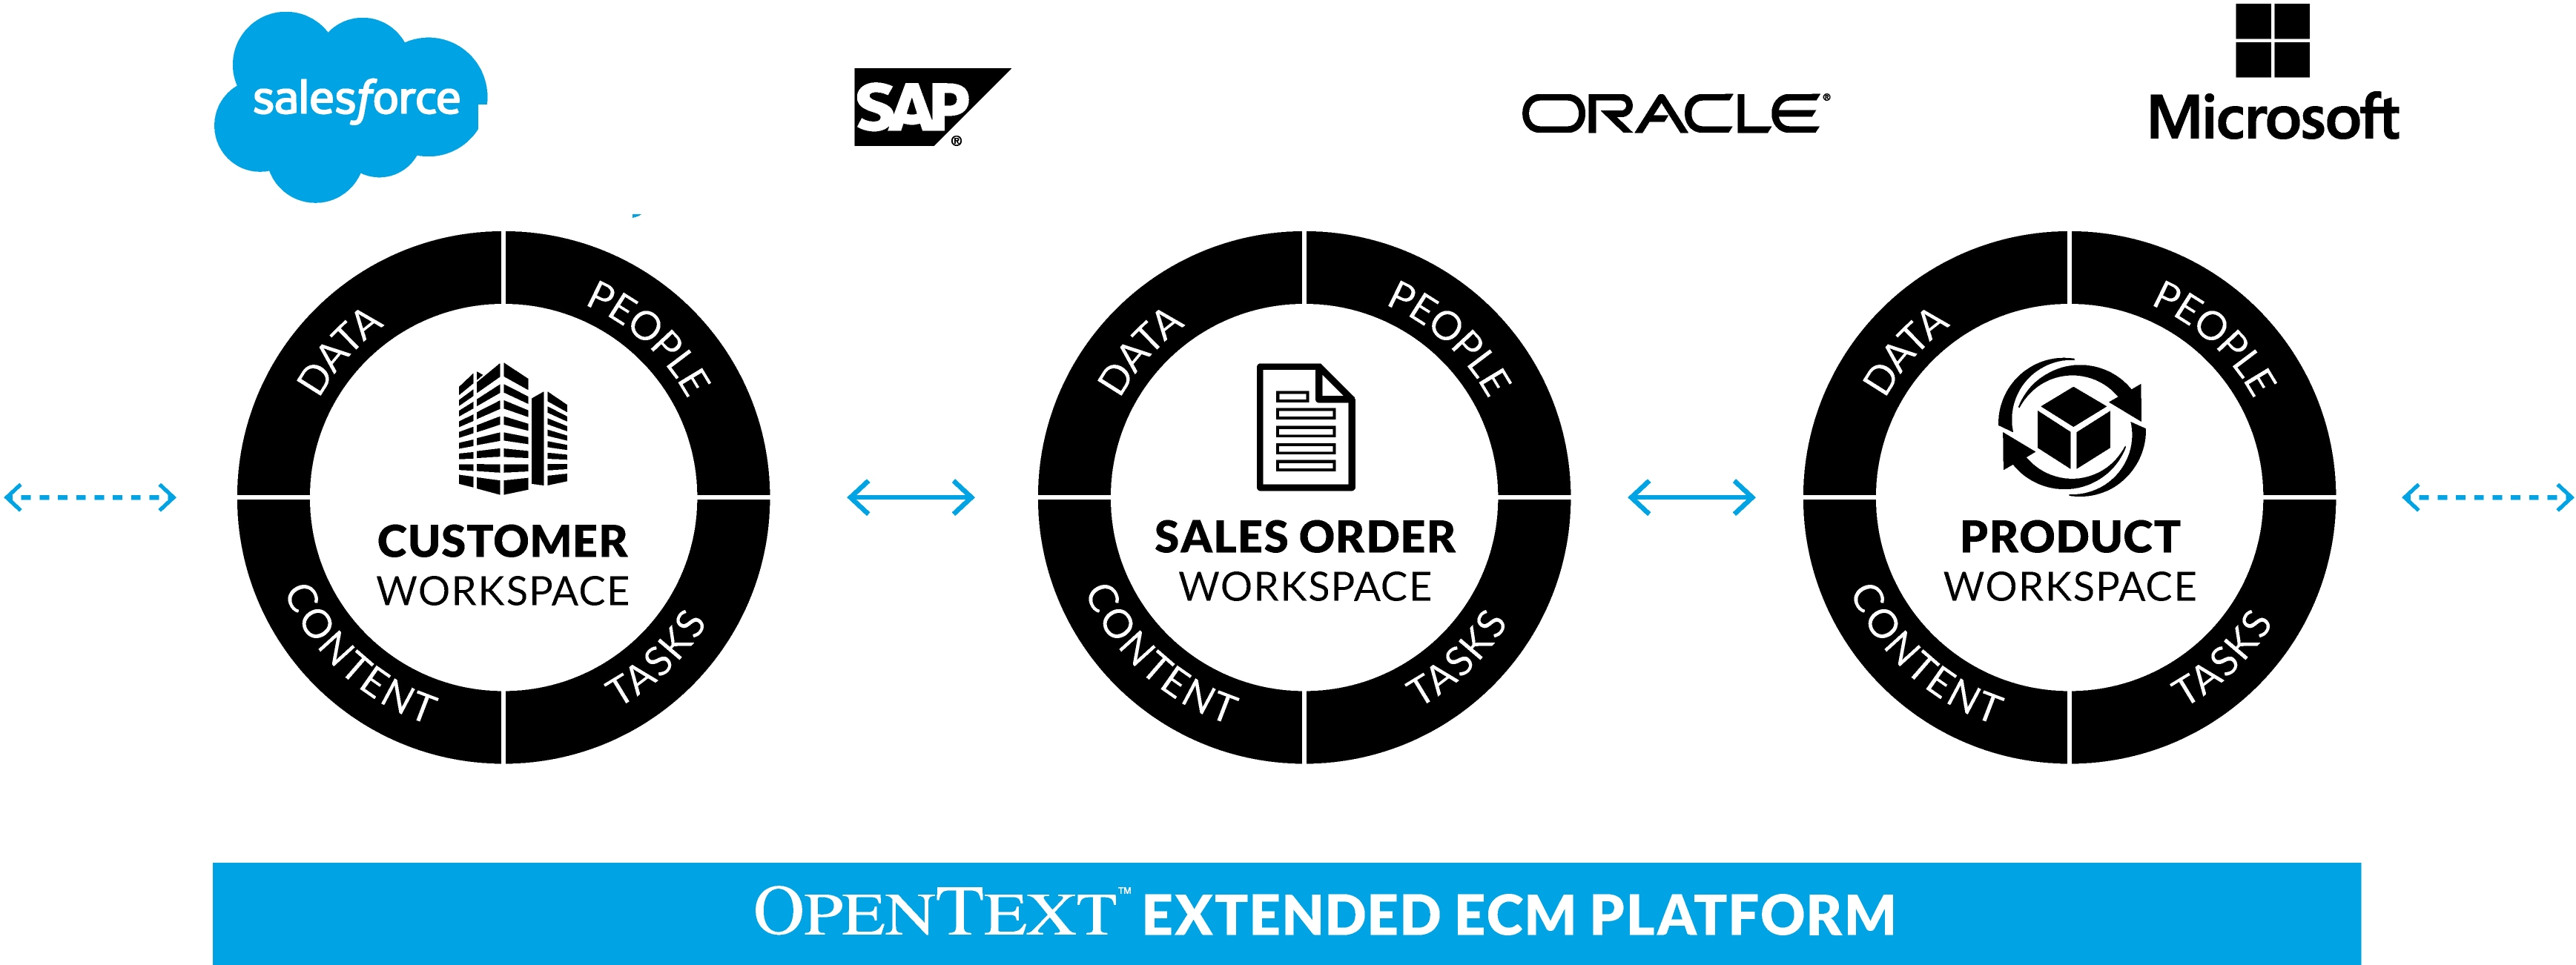 OpenText Extended ECM Platform Supports SAP, Oracle, and Microsoft Applications